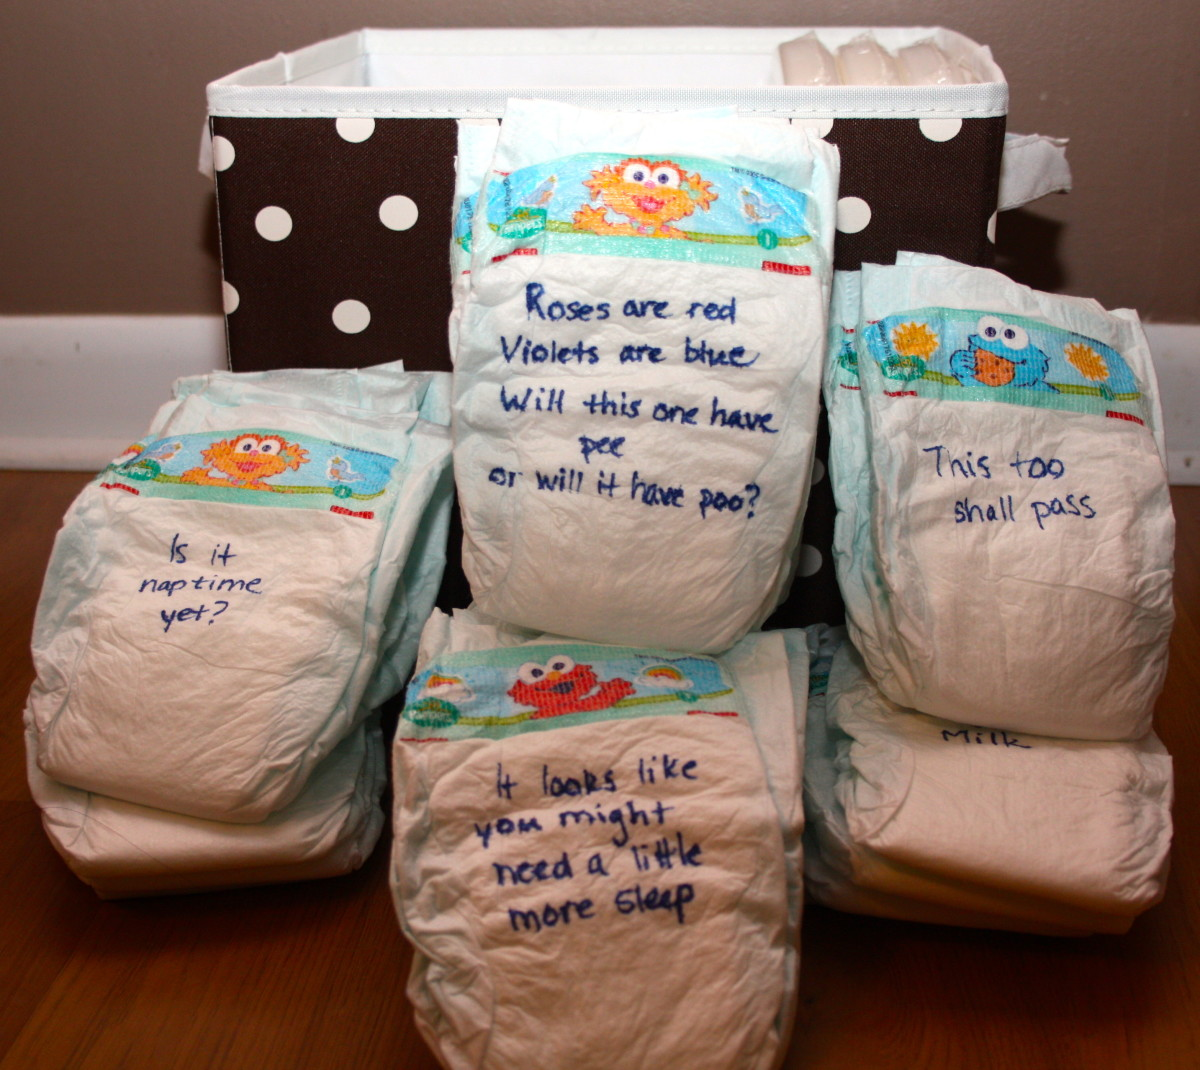 Entertaining And Practical Baby Shower Game Messages On Diapers